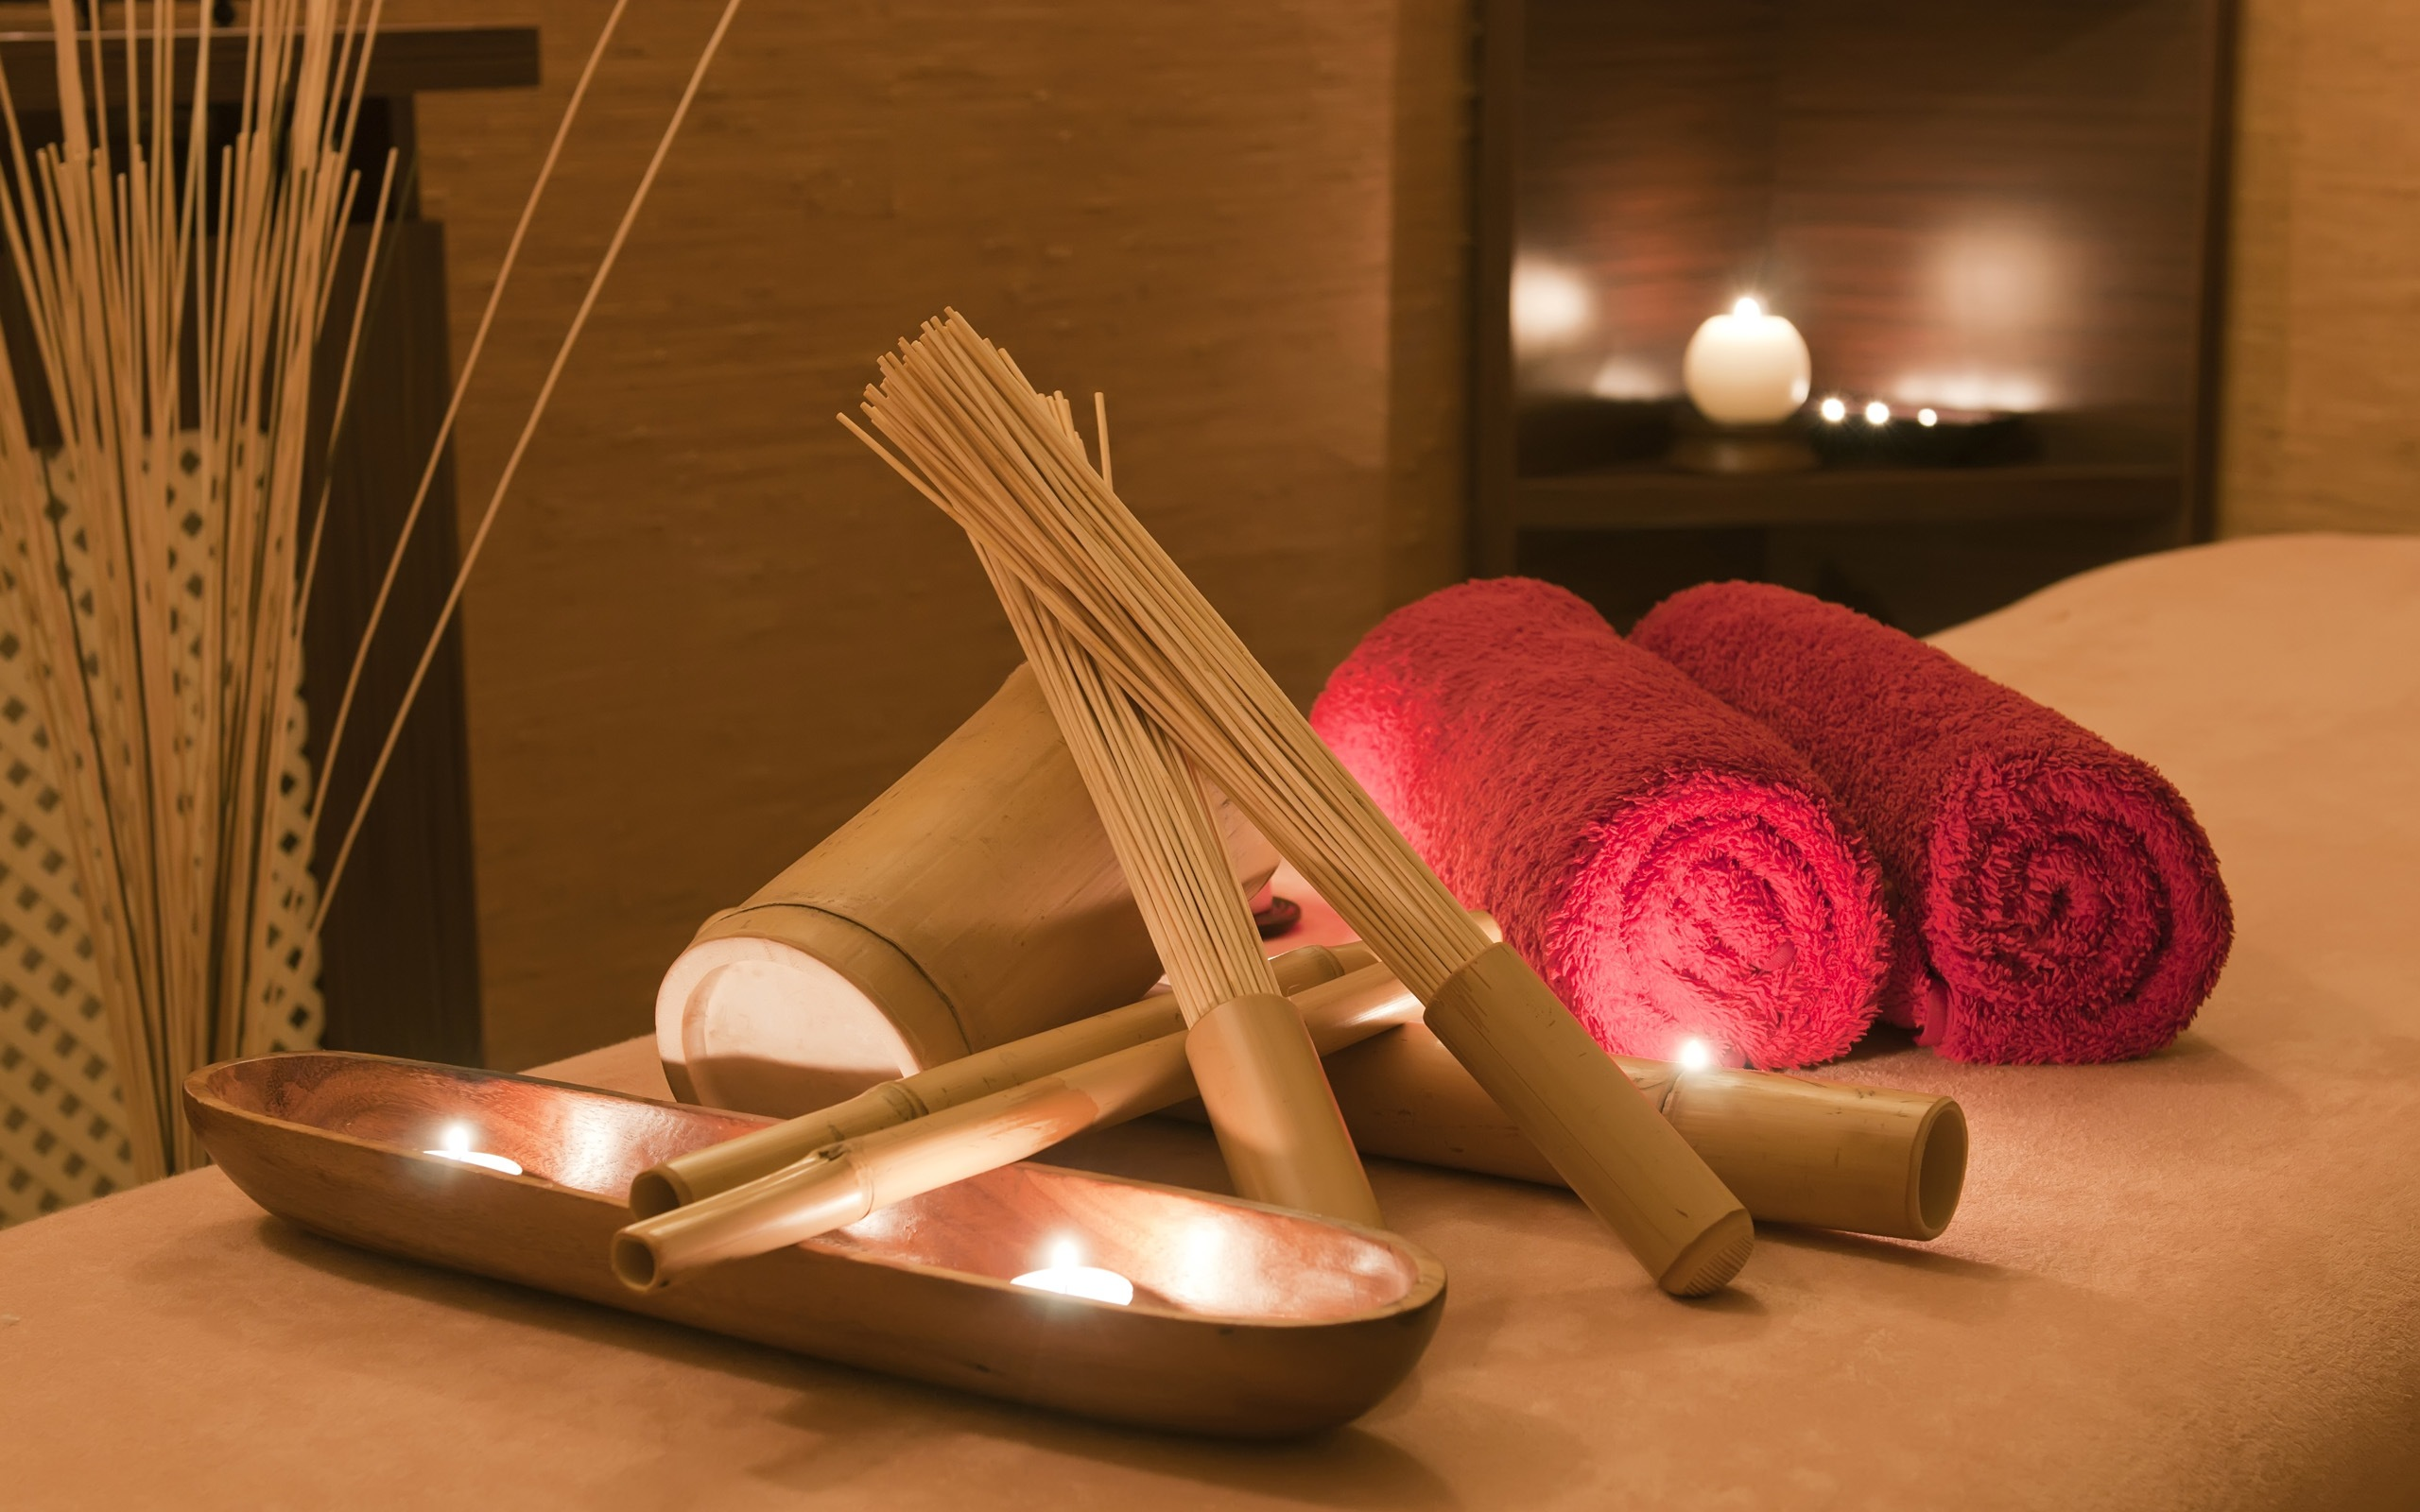 Spa wallpaper  Spa Full HD Wallpaper and Background Image | 2560x1600 | ID:369125